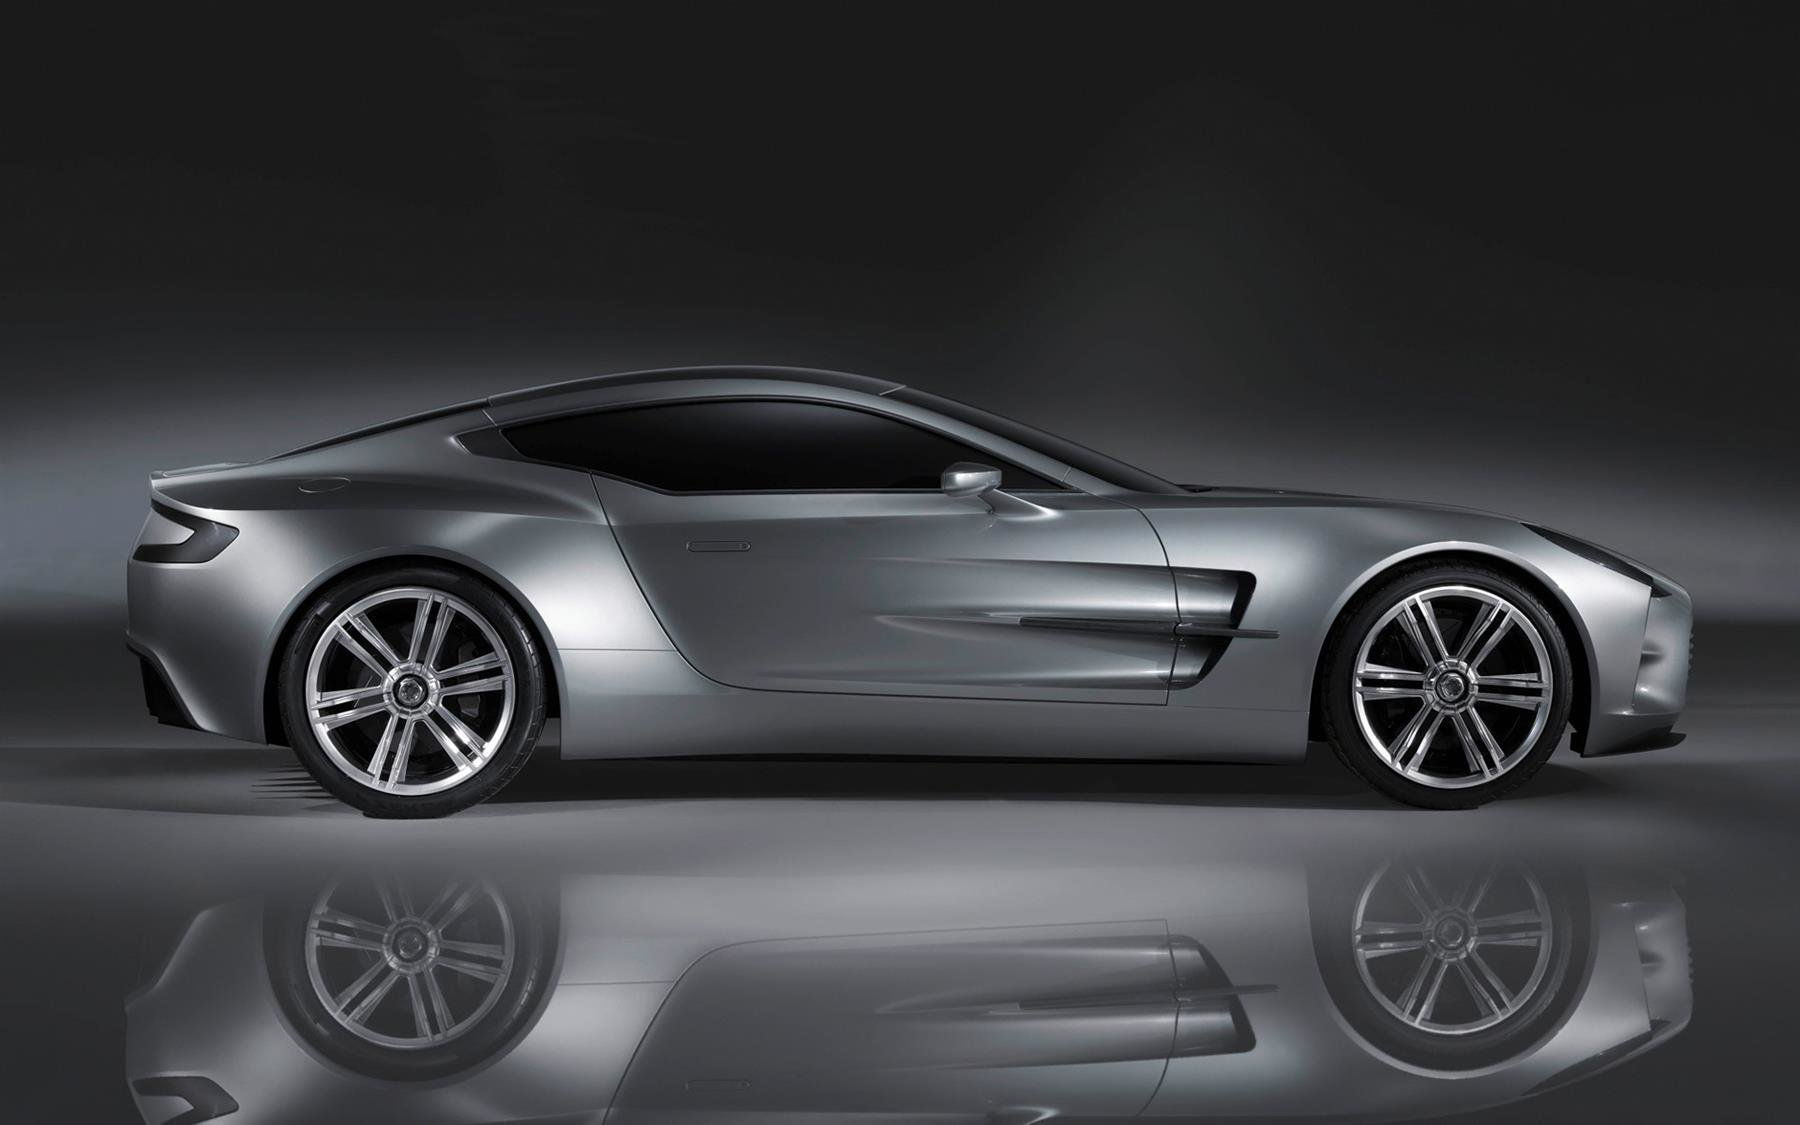 Latest Used 2012 Aston Martin One 77 For Sale In London Pistonheads Free Download